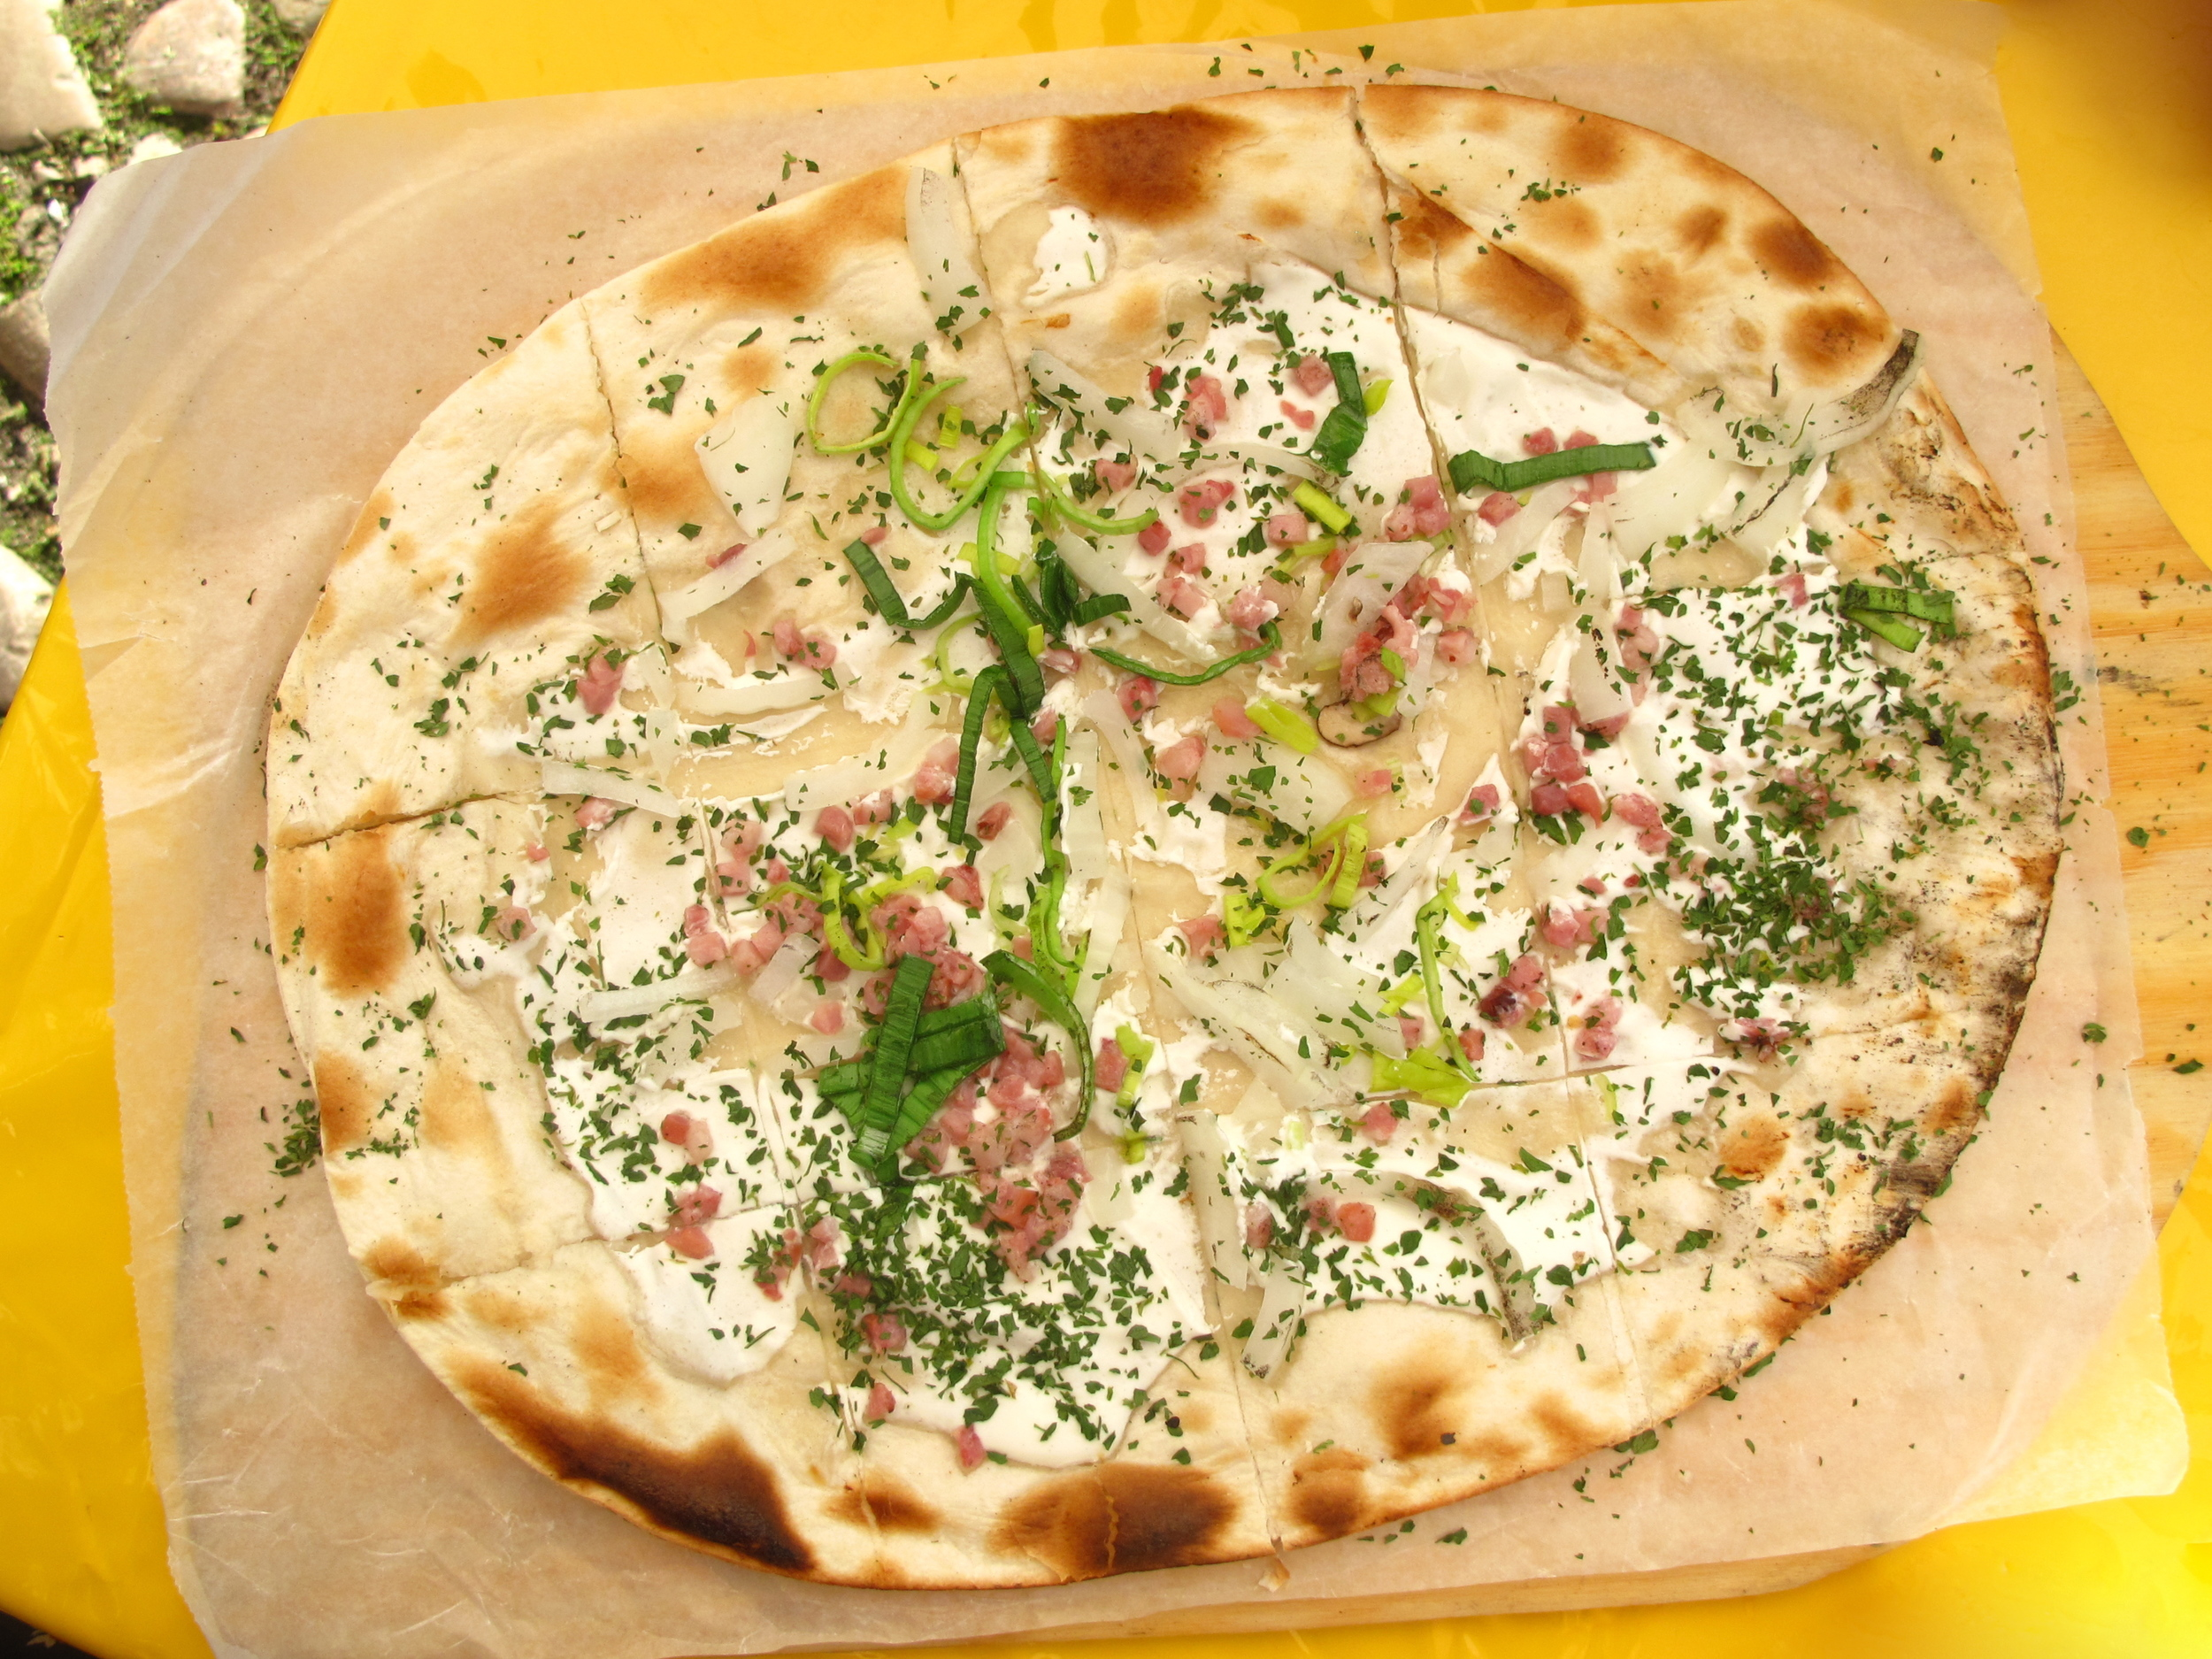 Flammkuchen - like a German pizza bread.